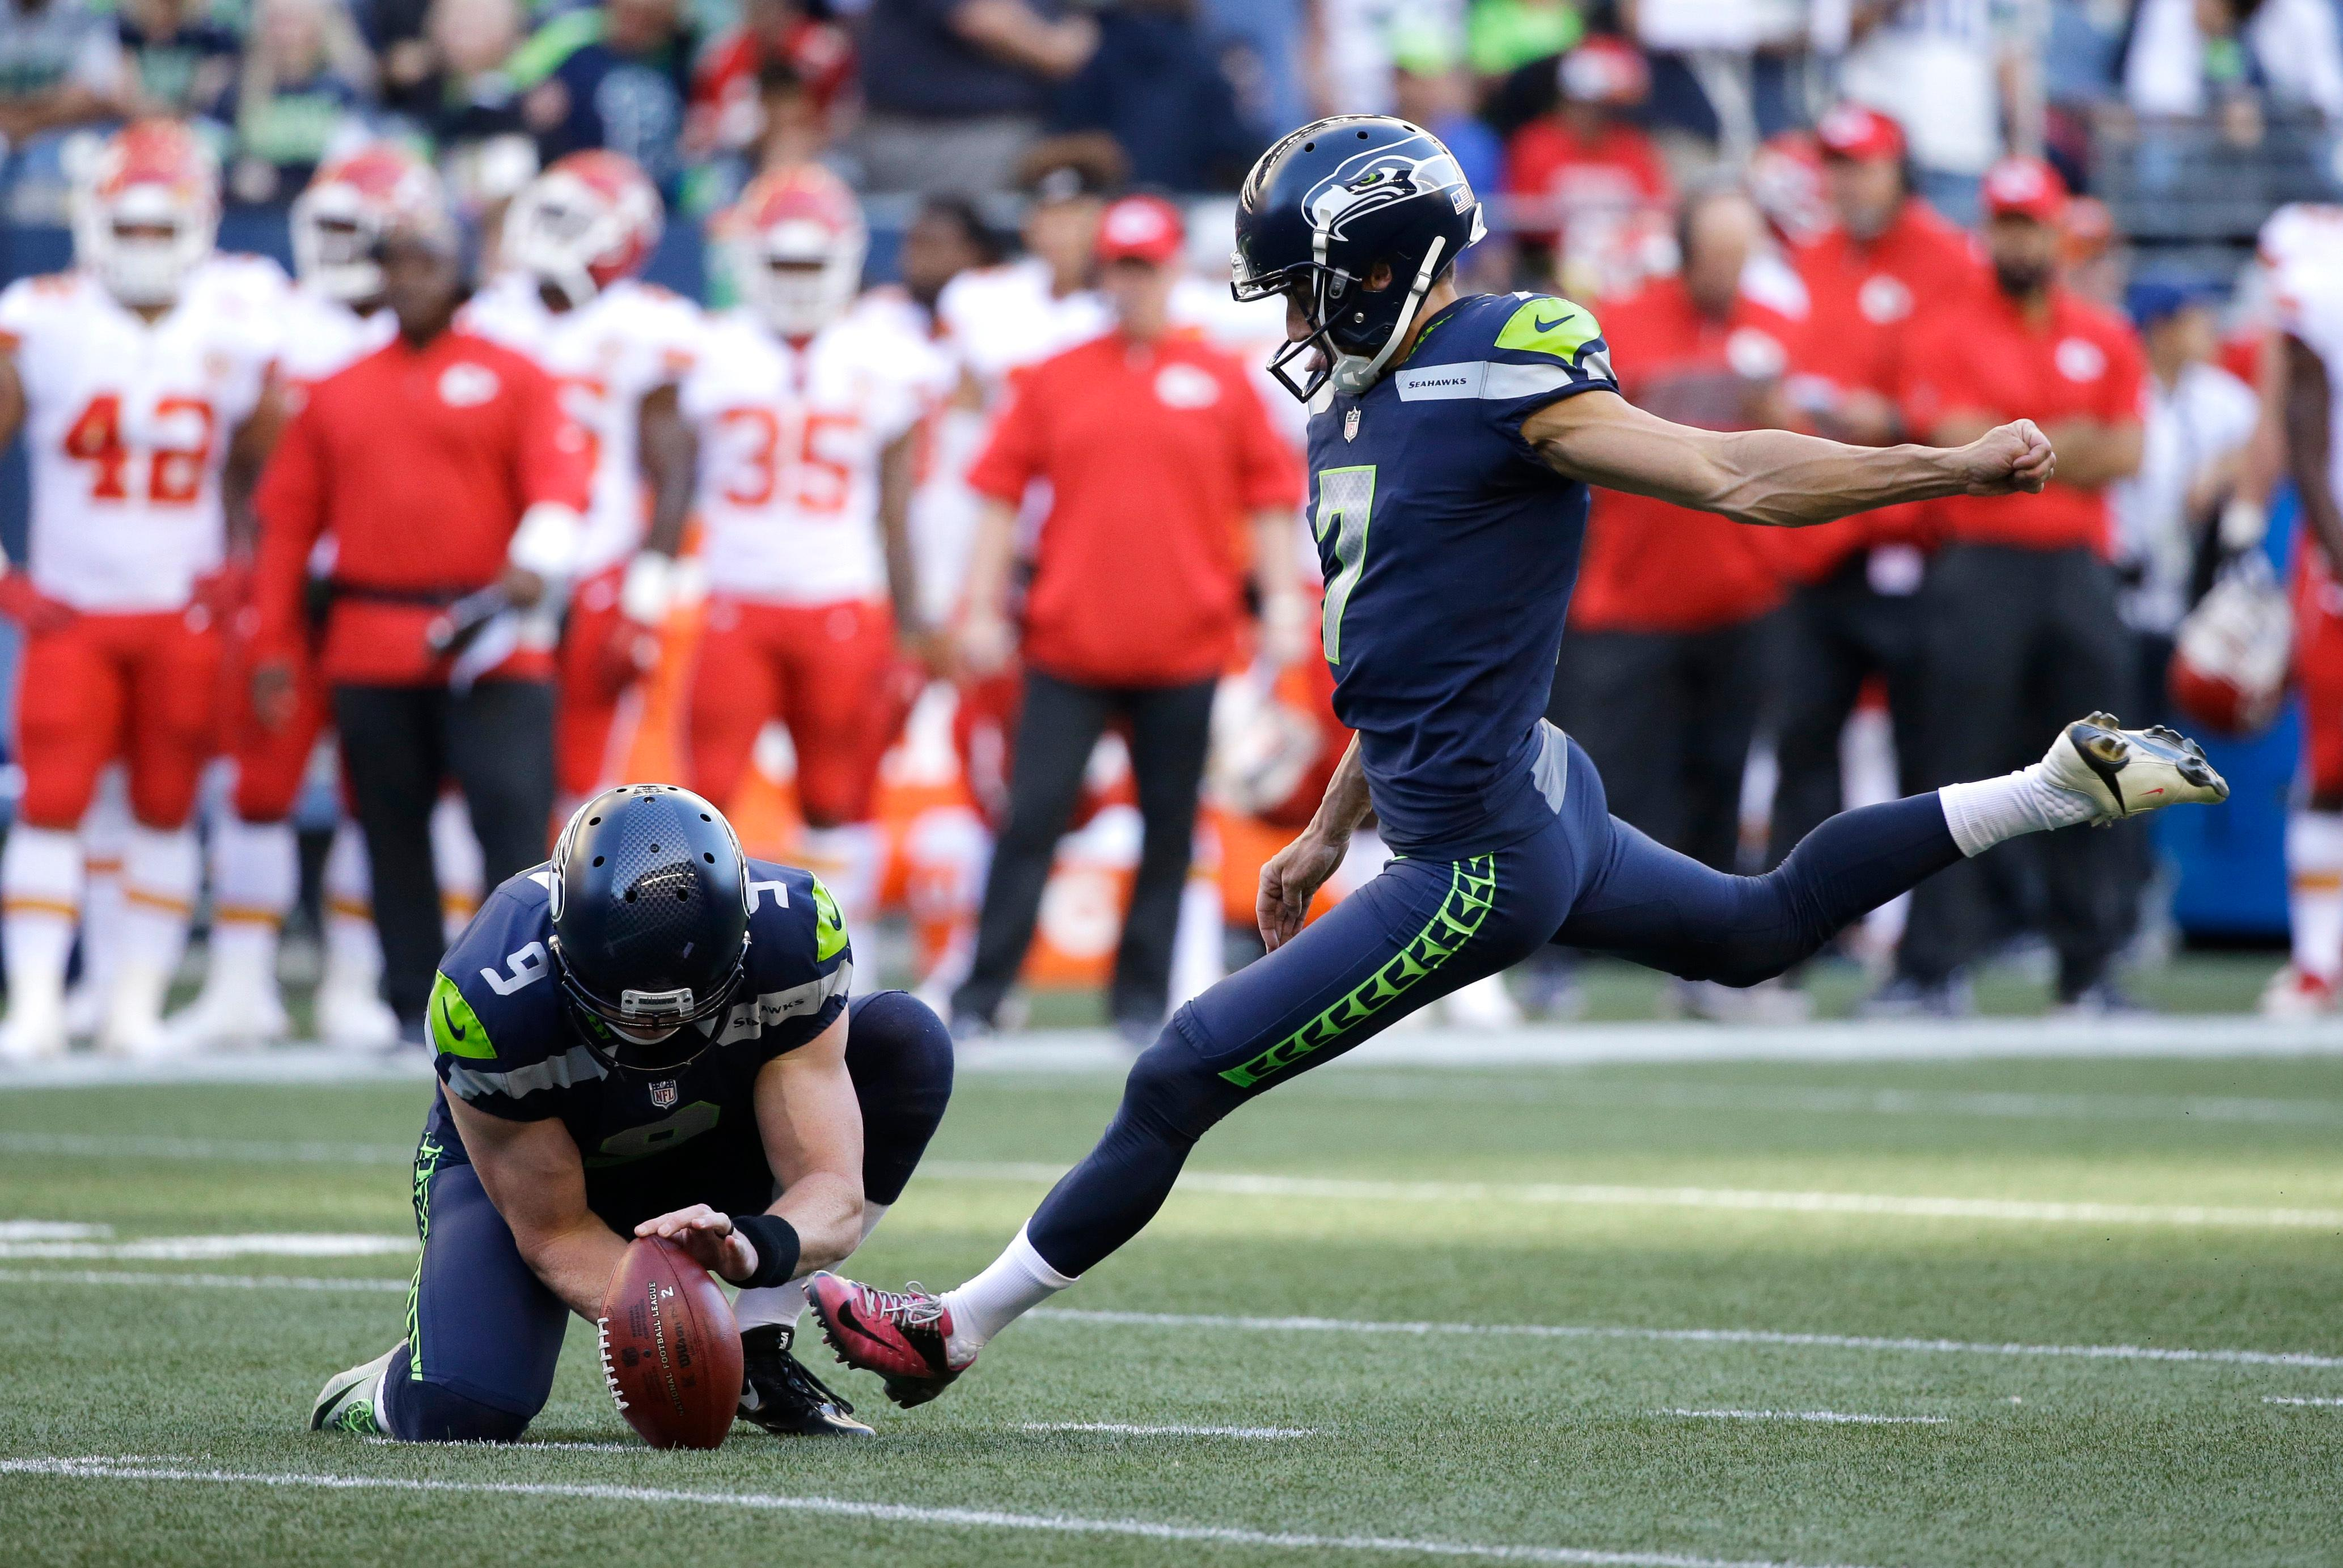 Seattle Seahawks' Blair Walsh, right, kicks a field goal against the Kansas City Chiefs as Jon Ryan (9) holds during the first half of an NFL football preseason game, Friday, Aug. 25, 2017, in Seattle. (AP Photo/Elaine Thompson)